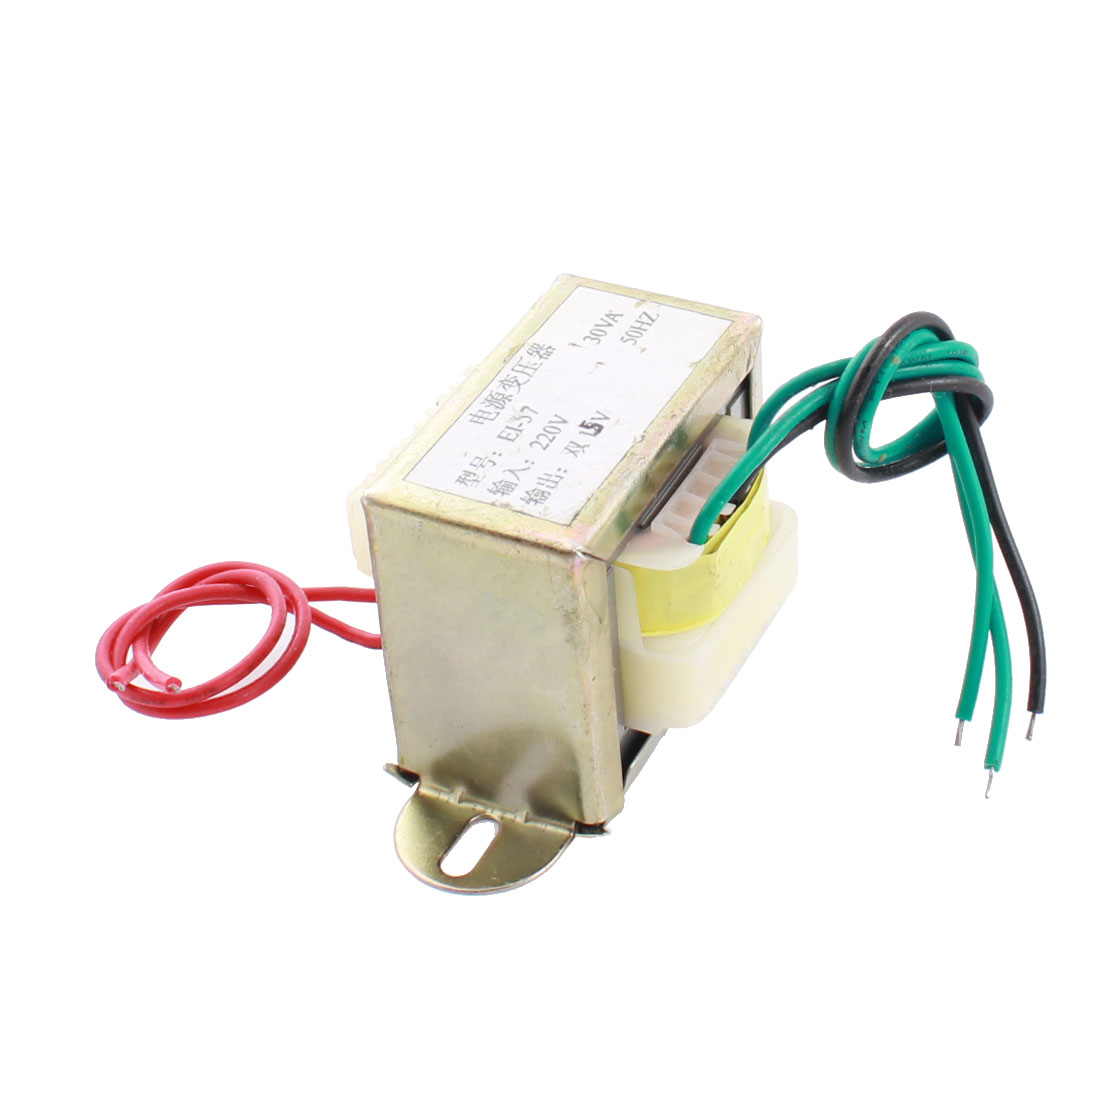 220V 50Hz Input 15V Output Single Phase EI Core Power Transformer